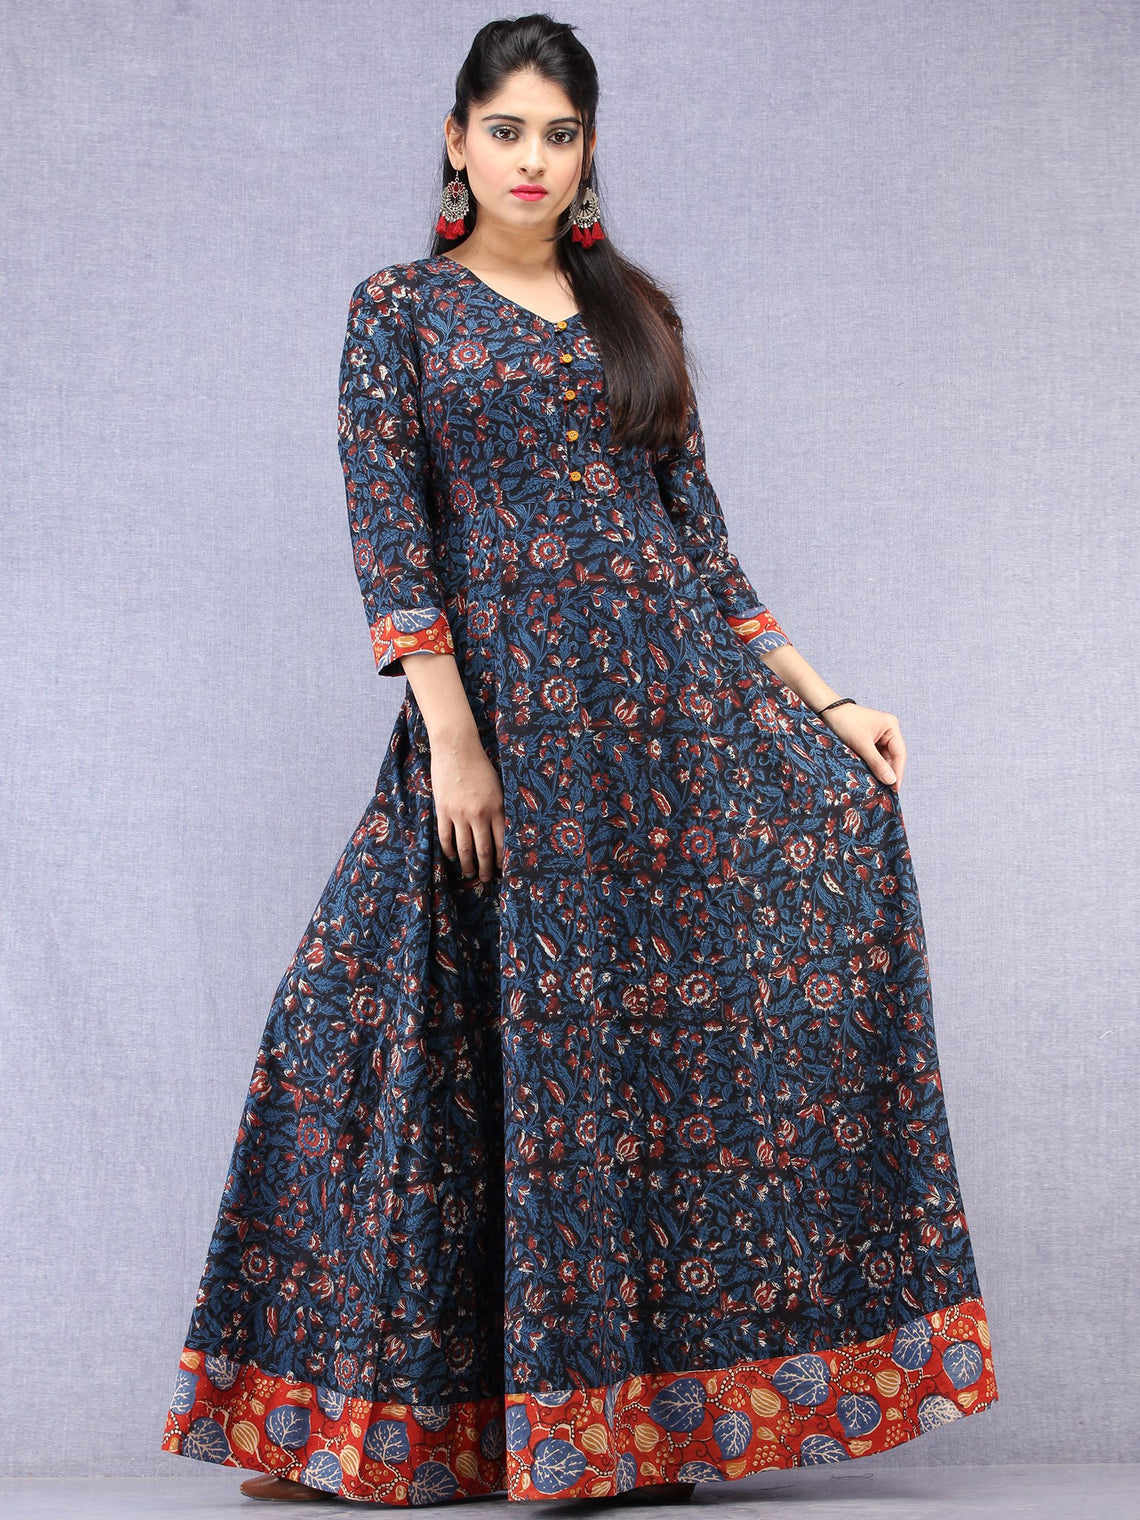 20813a4381 ... Nazmin - Hand Block Printed Long Cotton Dress With Back Knots -  D162F1301 ...